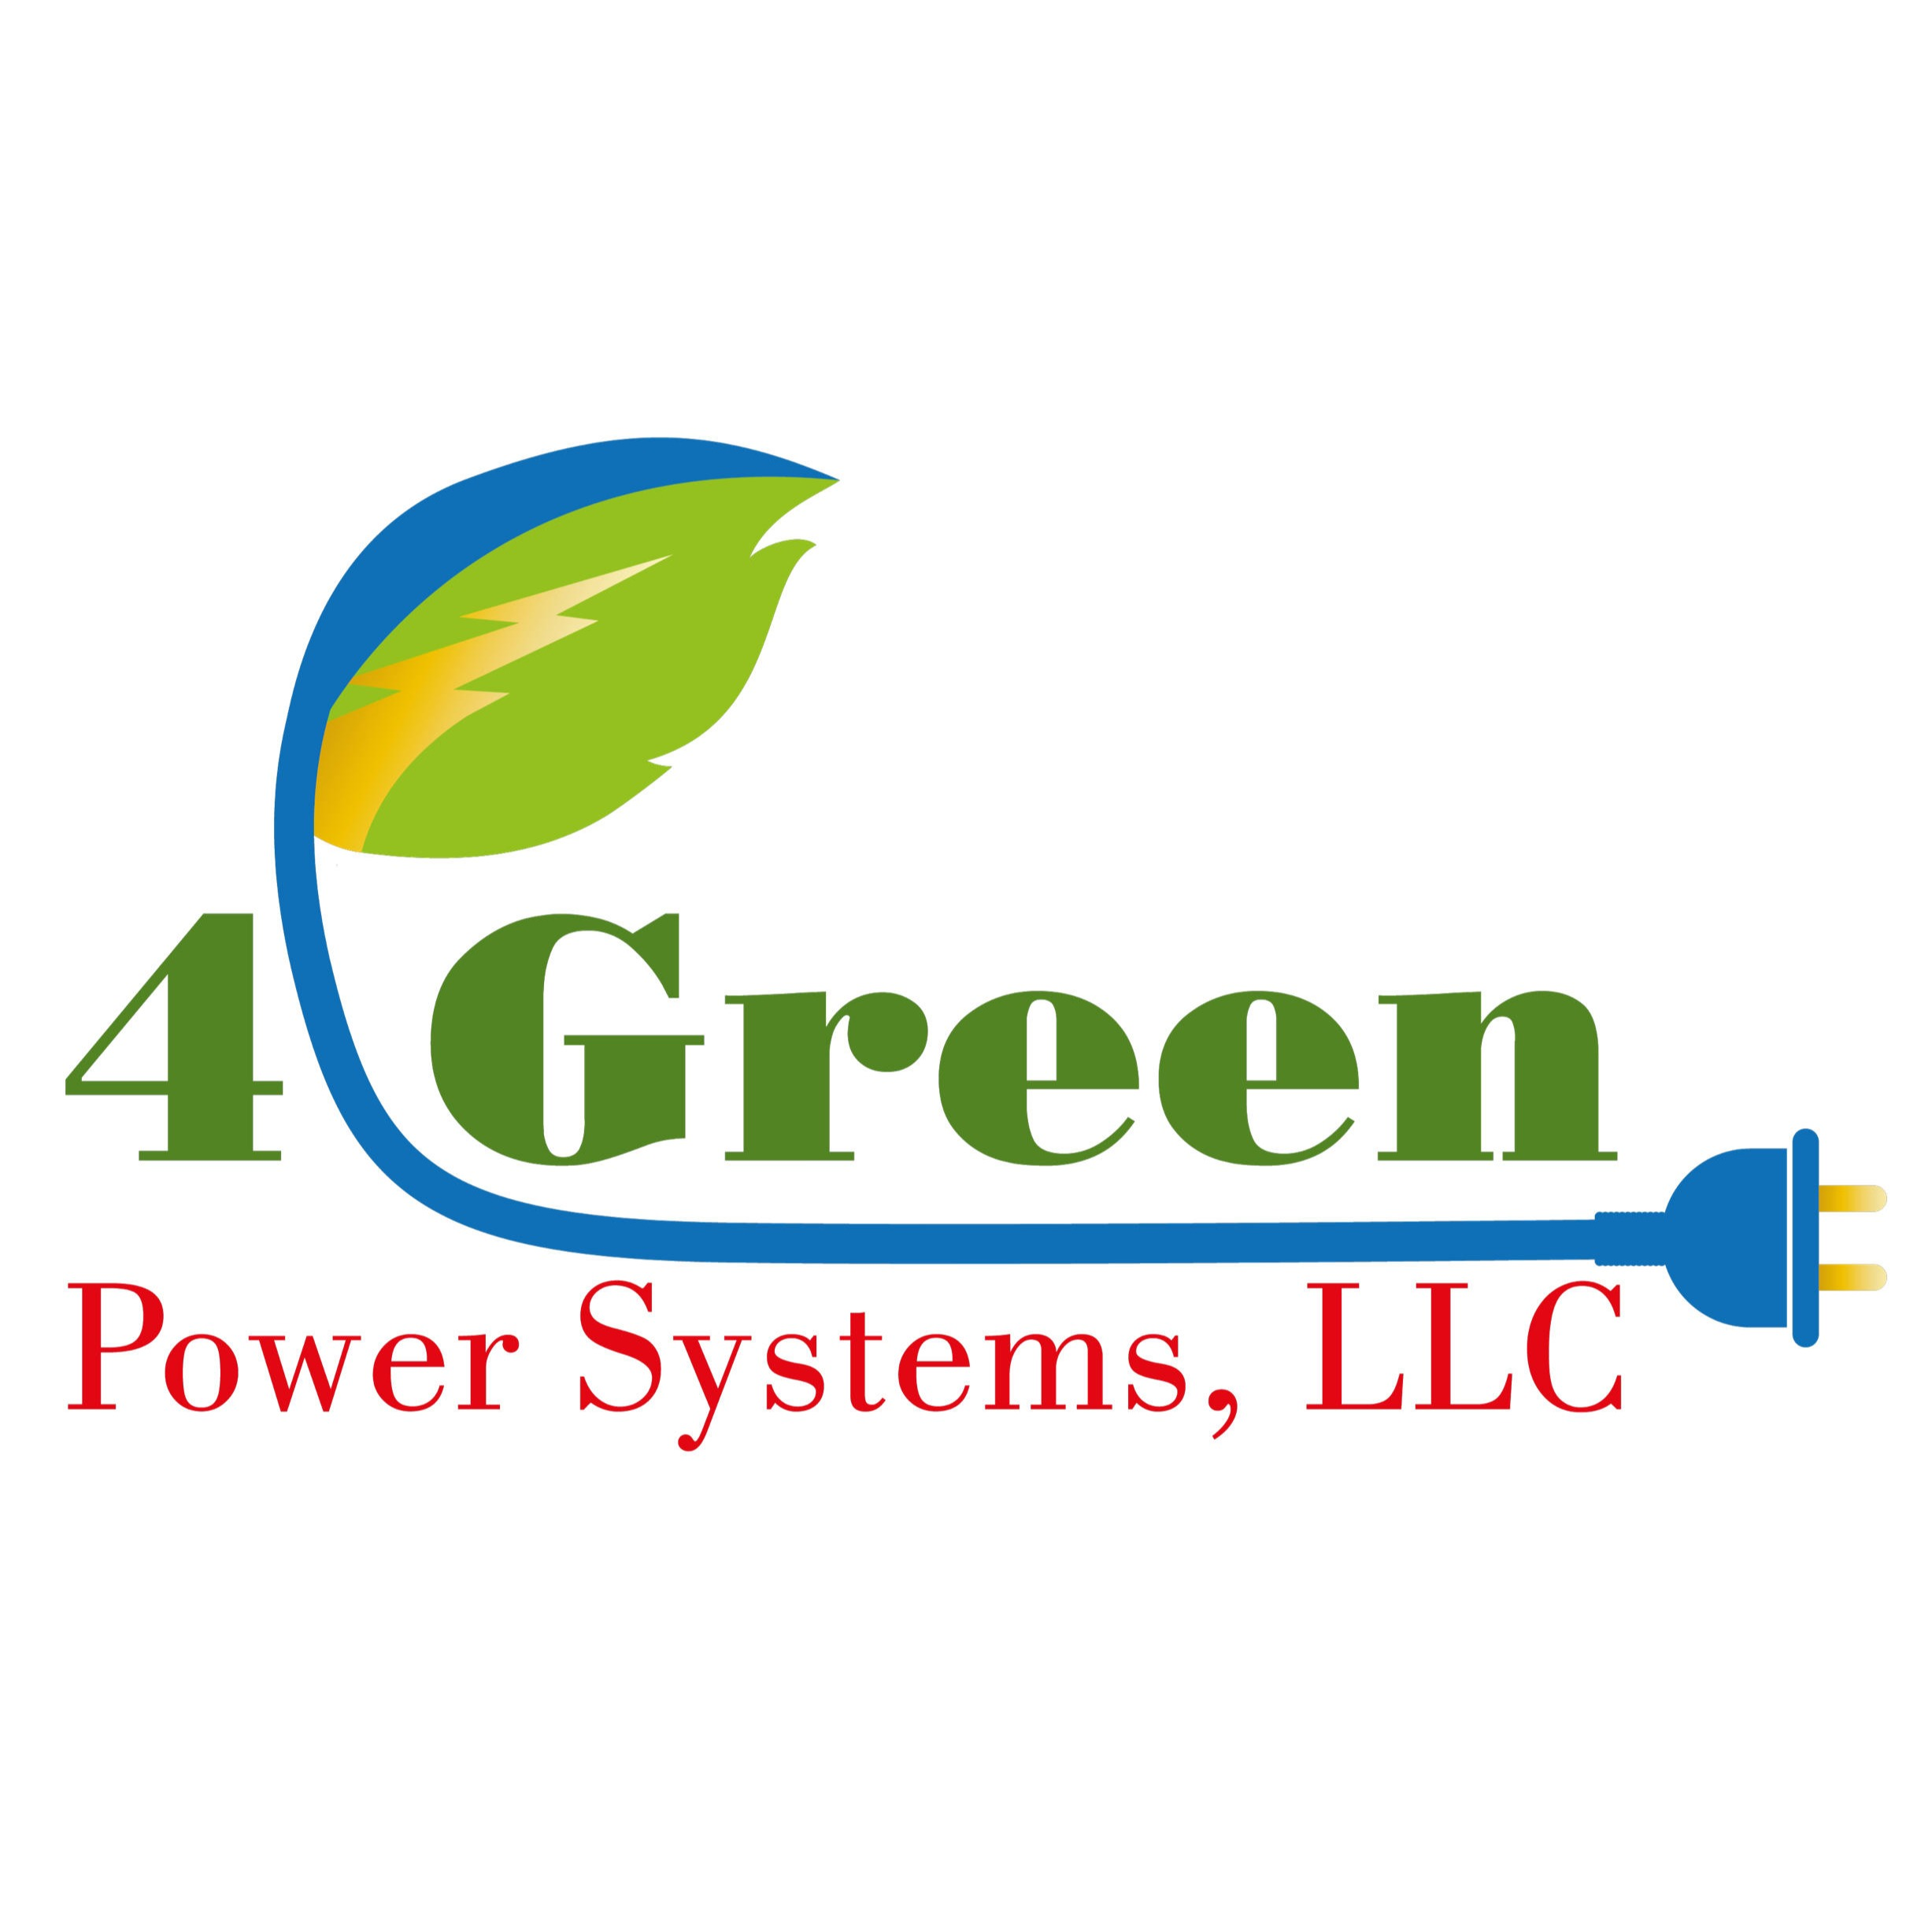 4 Green Power Systems, LLC Logo